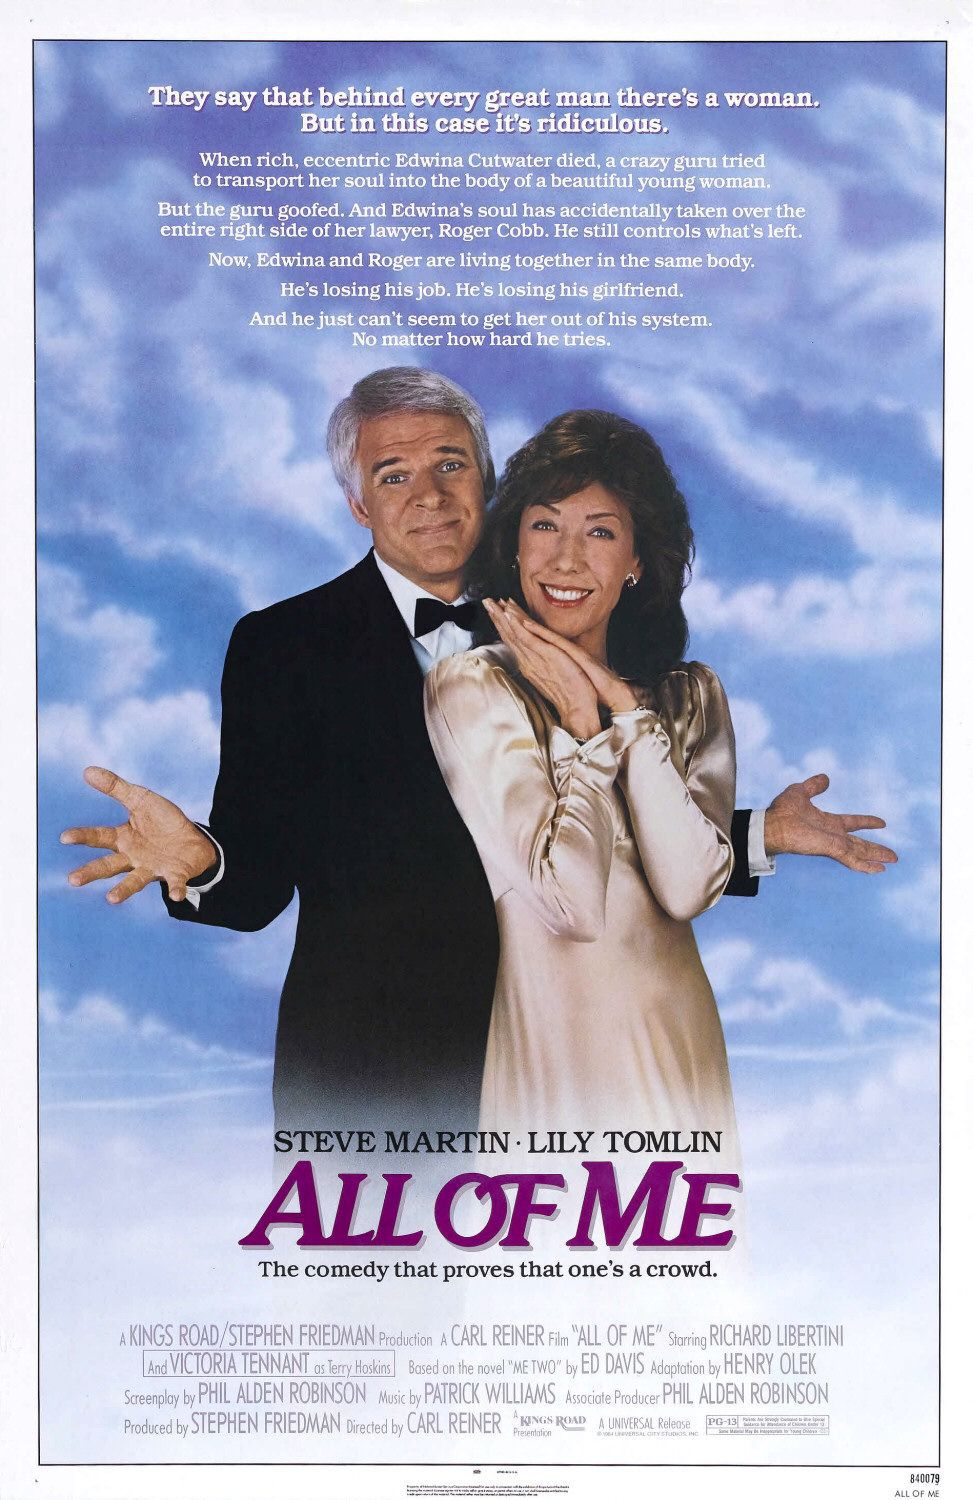 Ho sposato un Fantasma - All of Me - comedy film poster